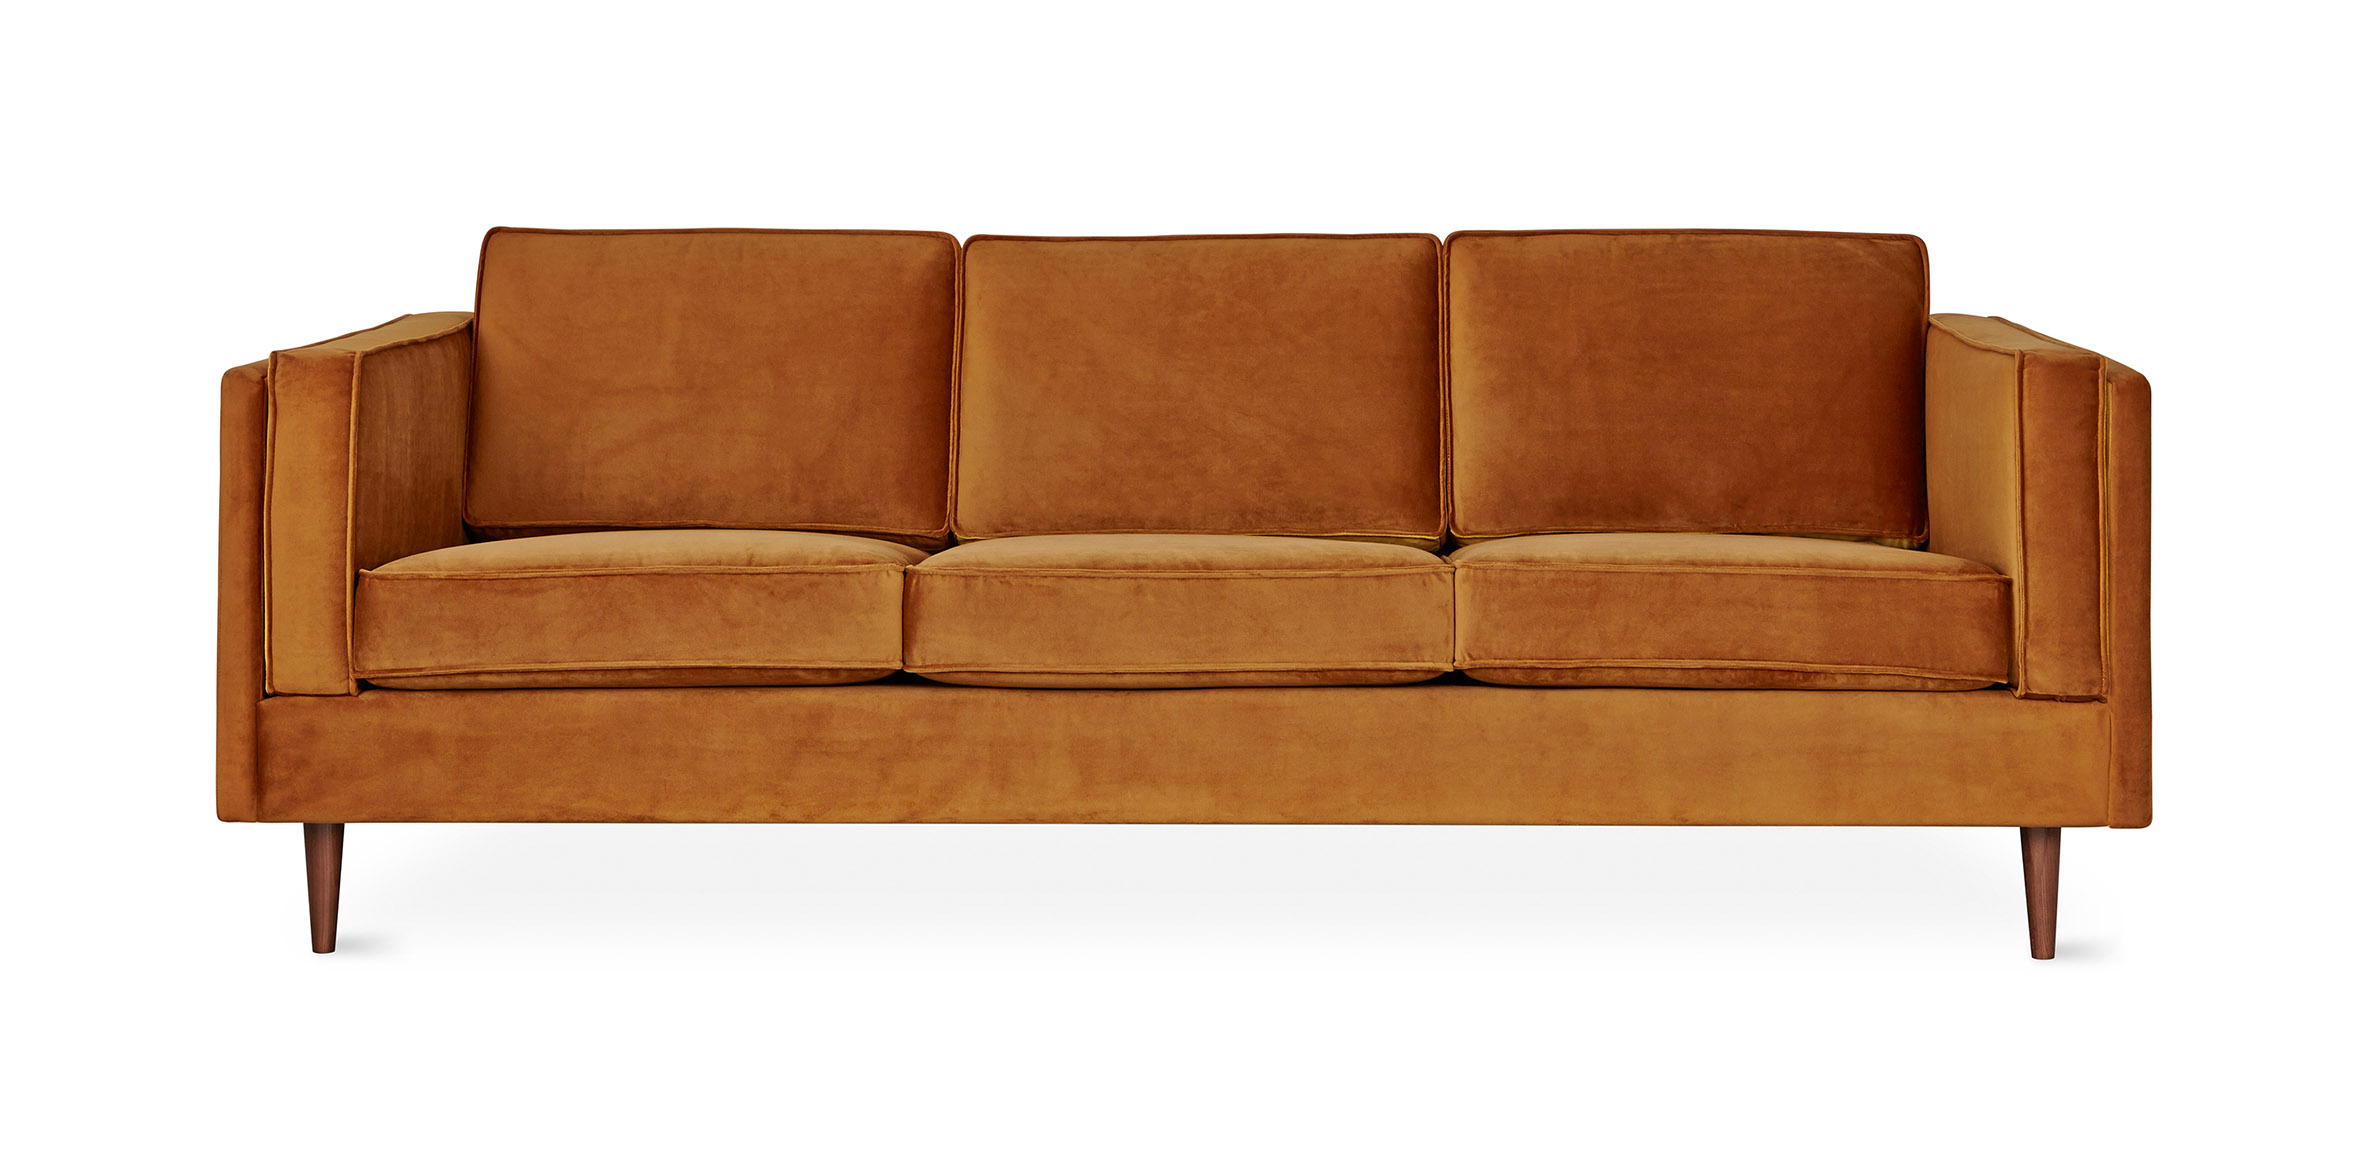 Adelaide sofa hip furniture for Furniture adelaide